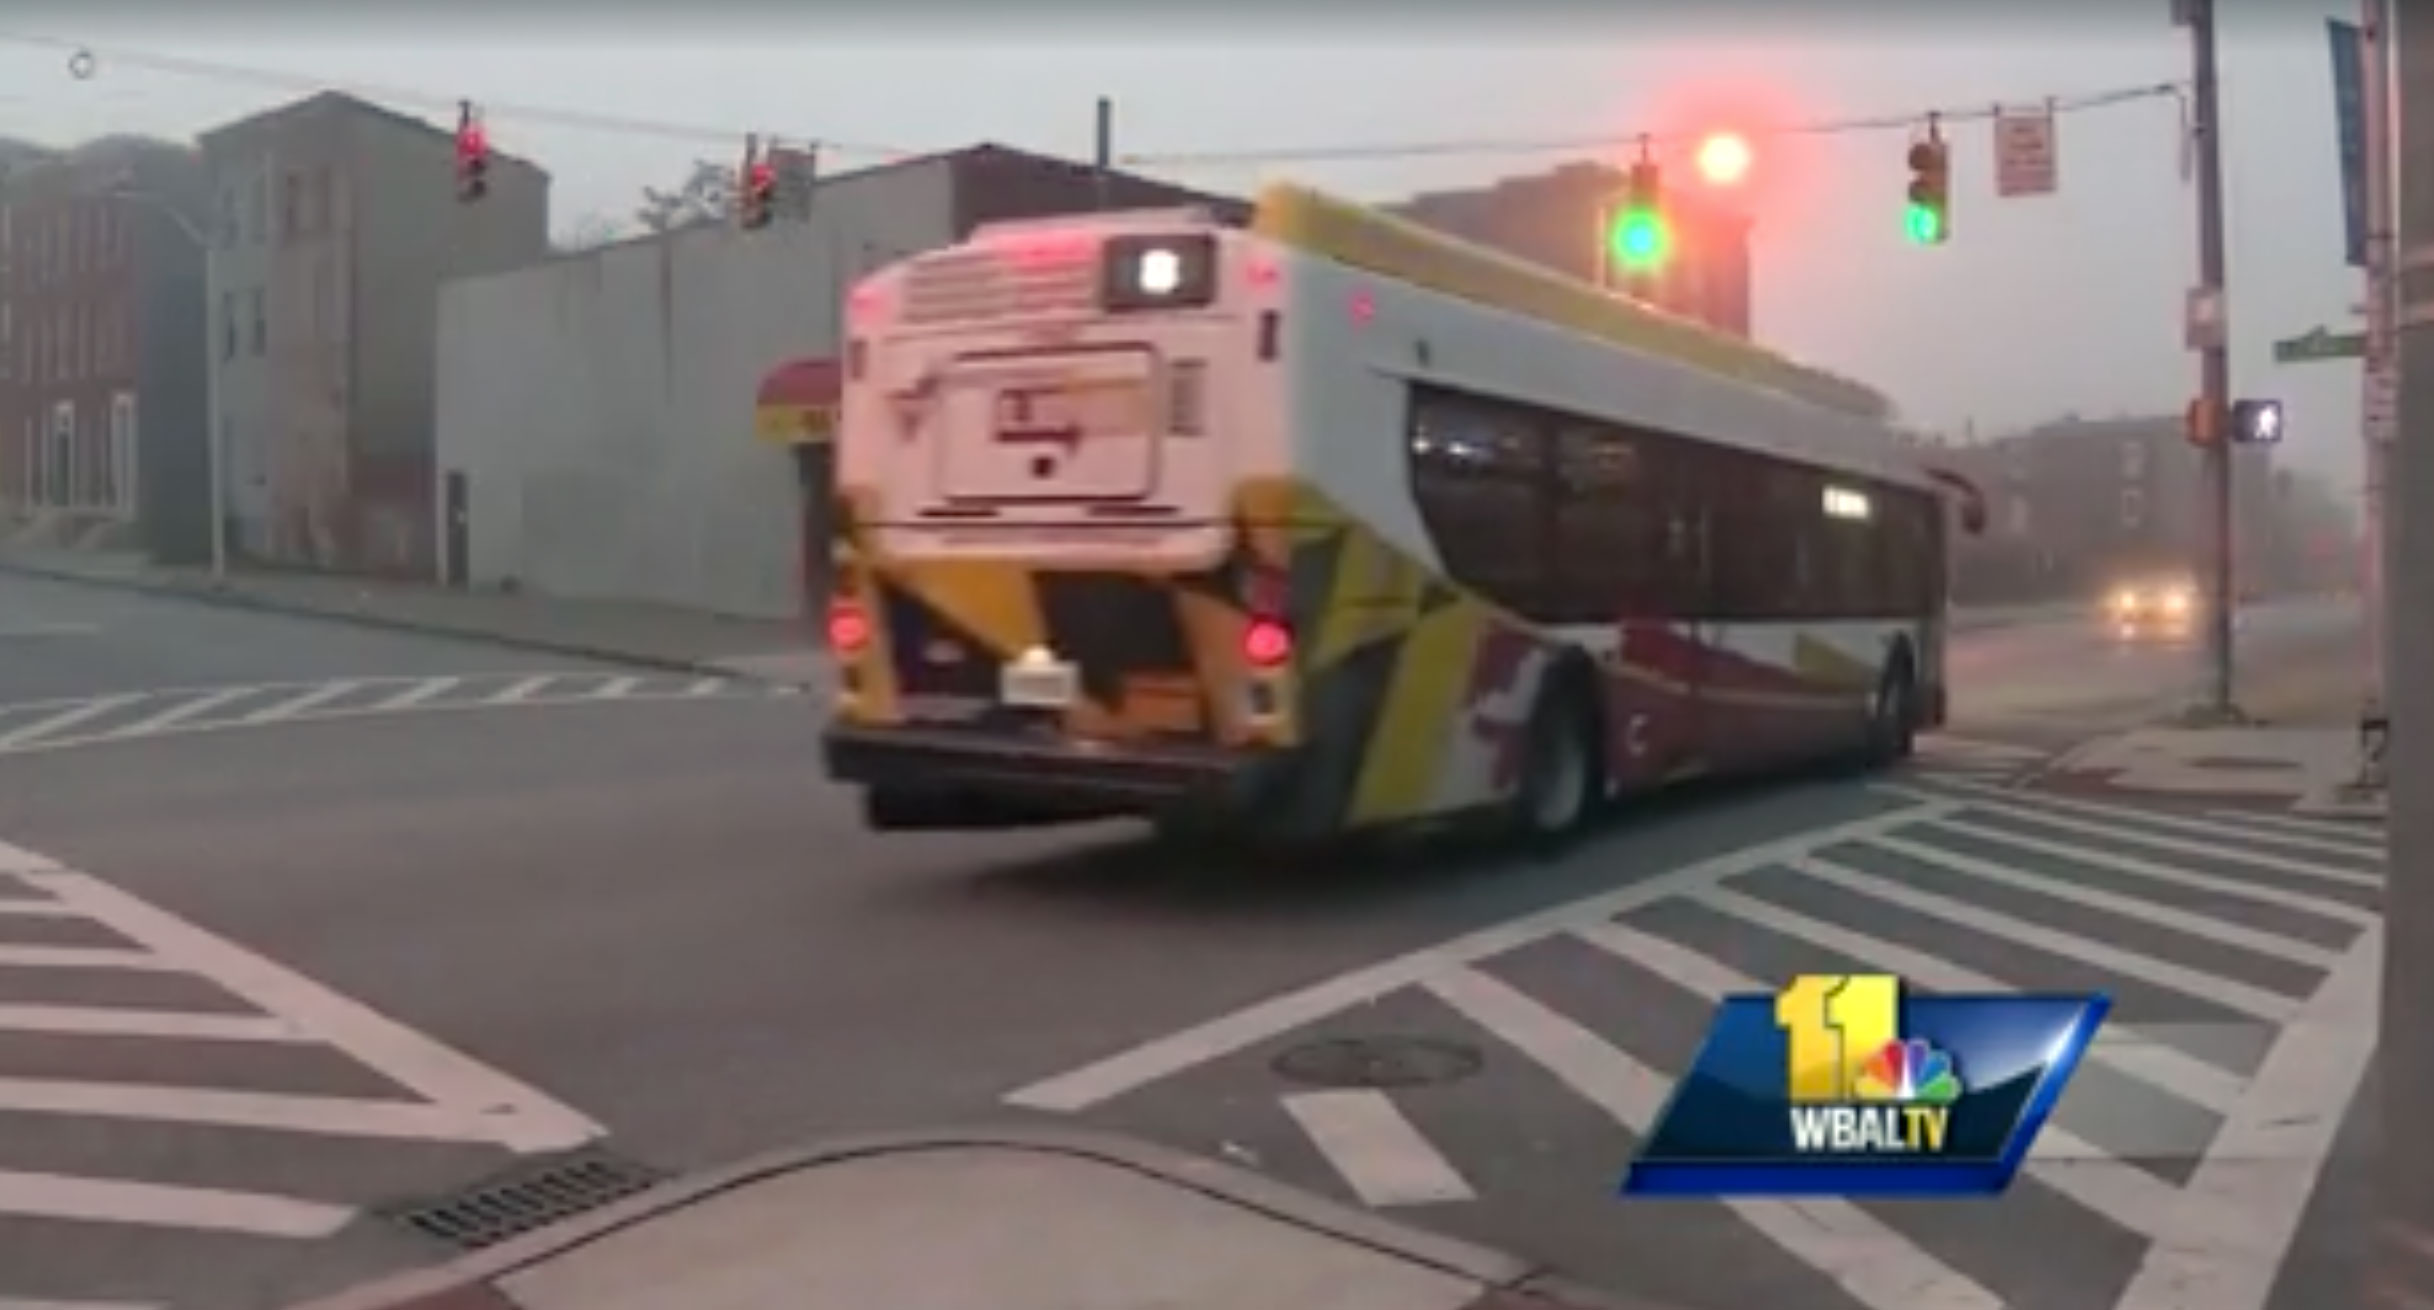 Bus travels through West Baltimore